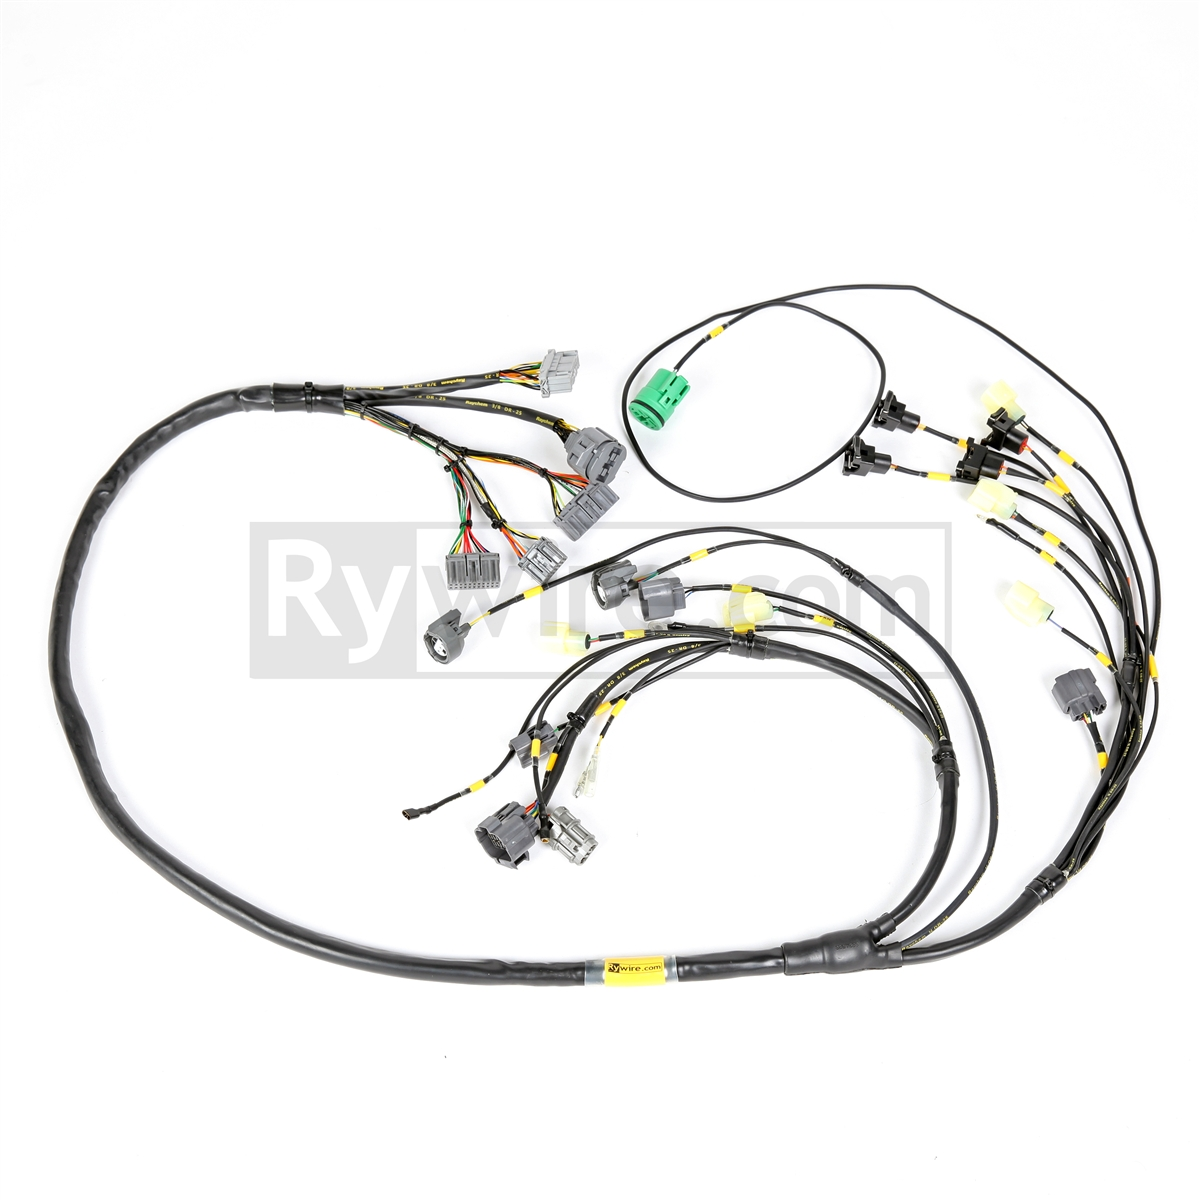 88 91 Honda Civic Engine Wiring Harness Diagram Libraries For Rywire Com Mil Spec F Series F20b U0026 H H22 Harness88 18